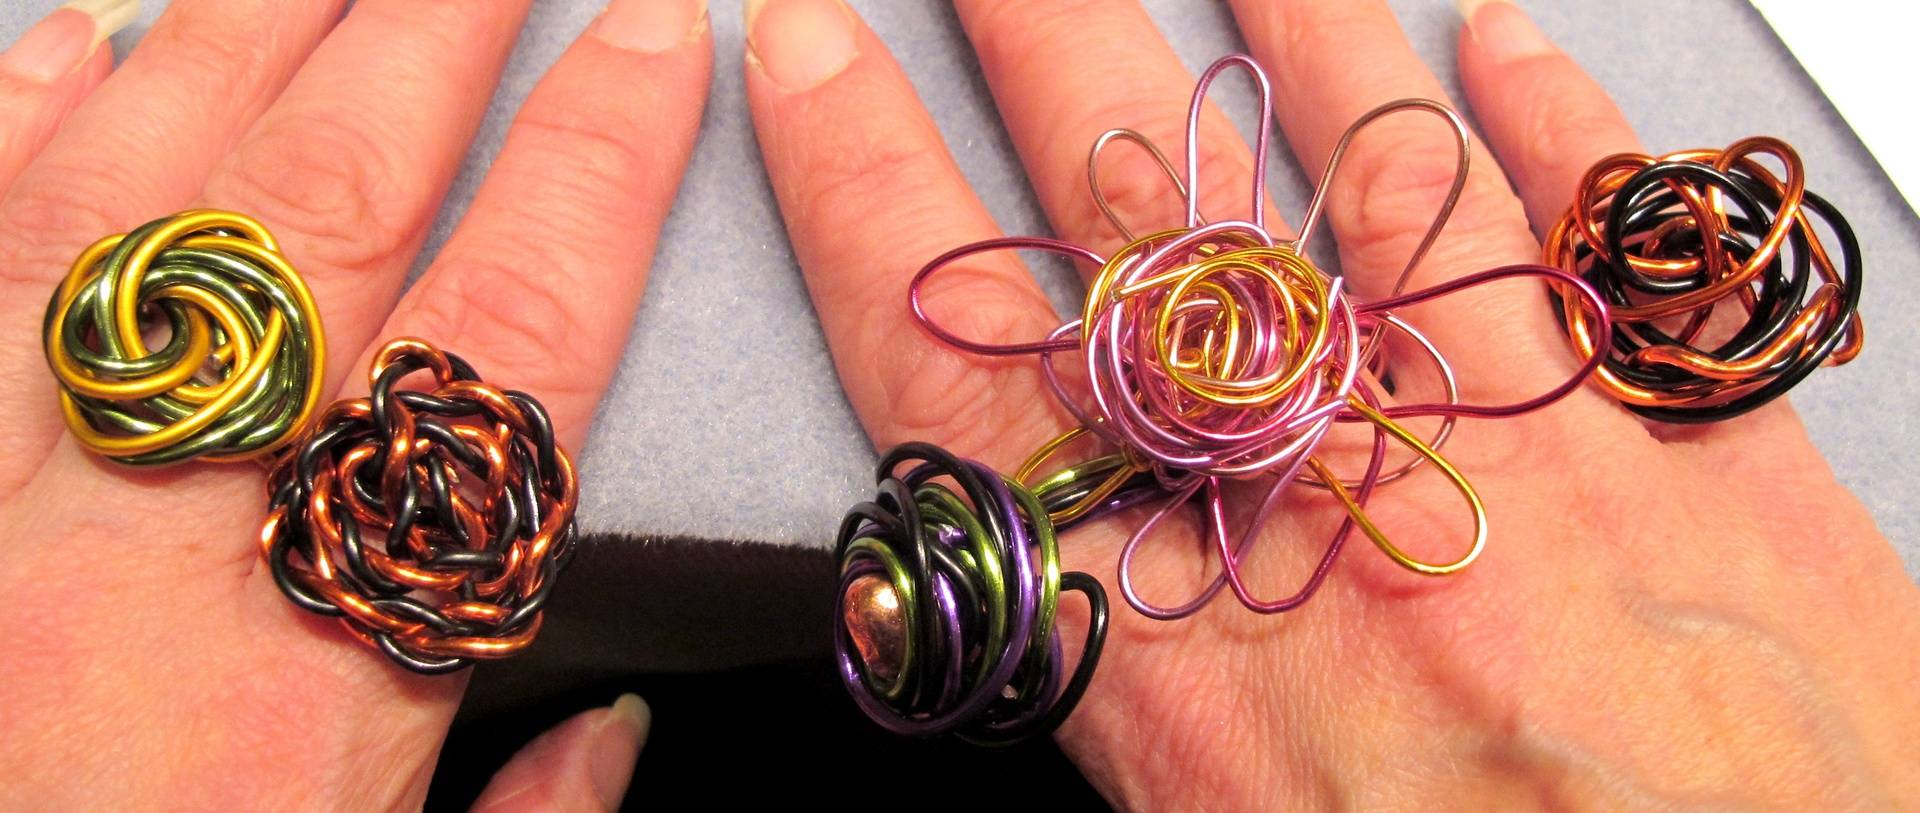 Curly Wurly Rings 2